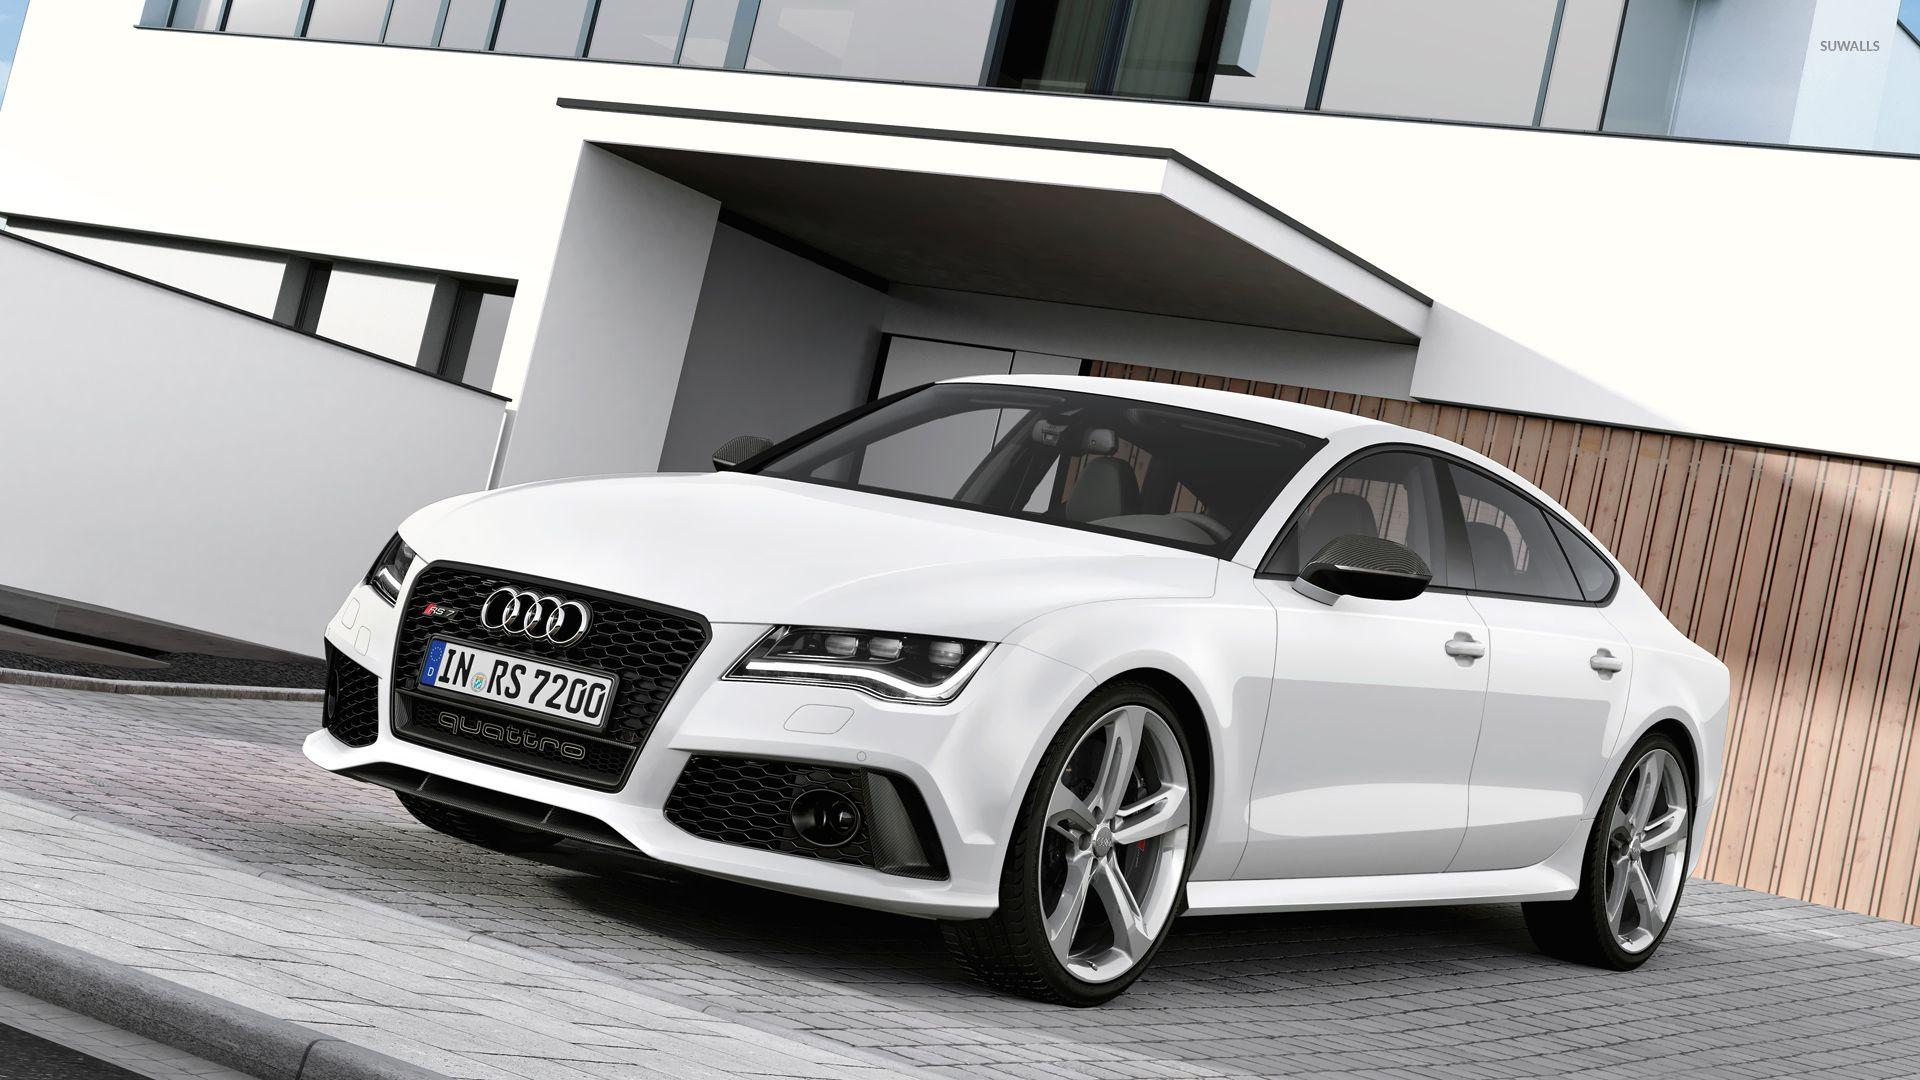 2014 White Audi RS7 Sportback wallpapers